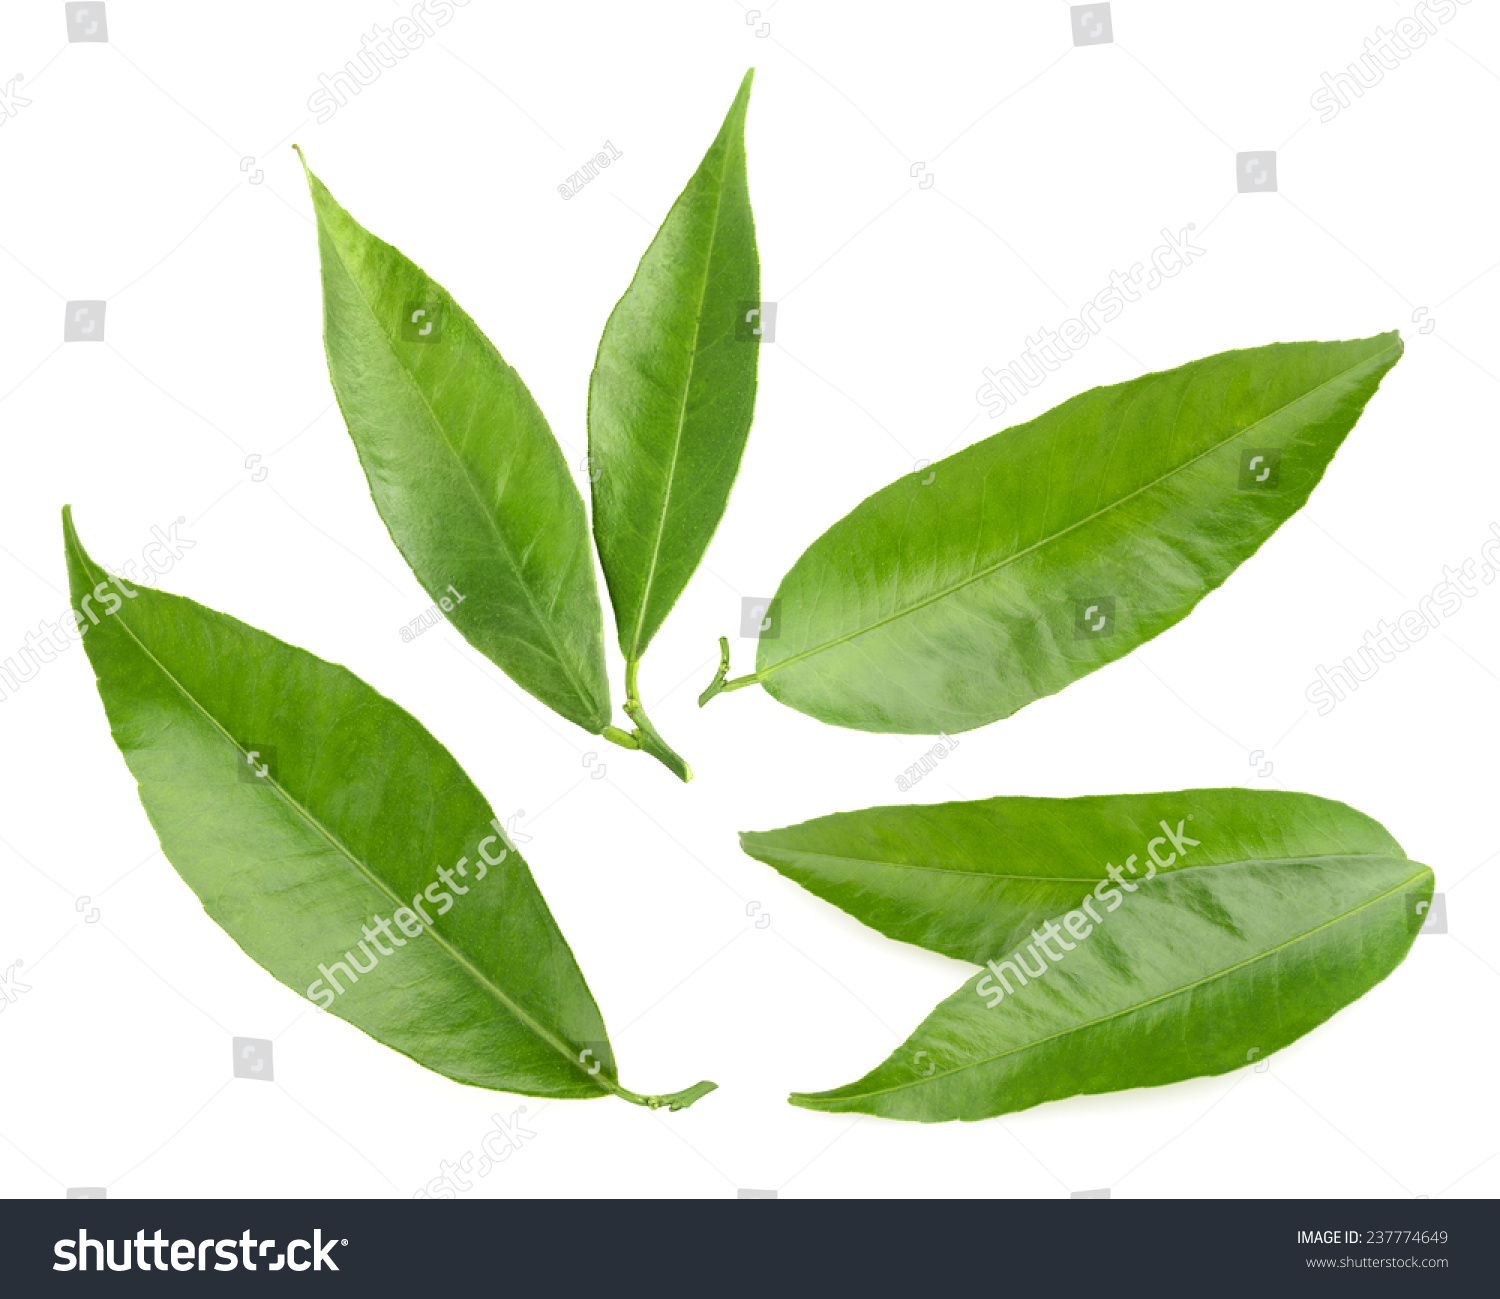 Leaves isolated photo